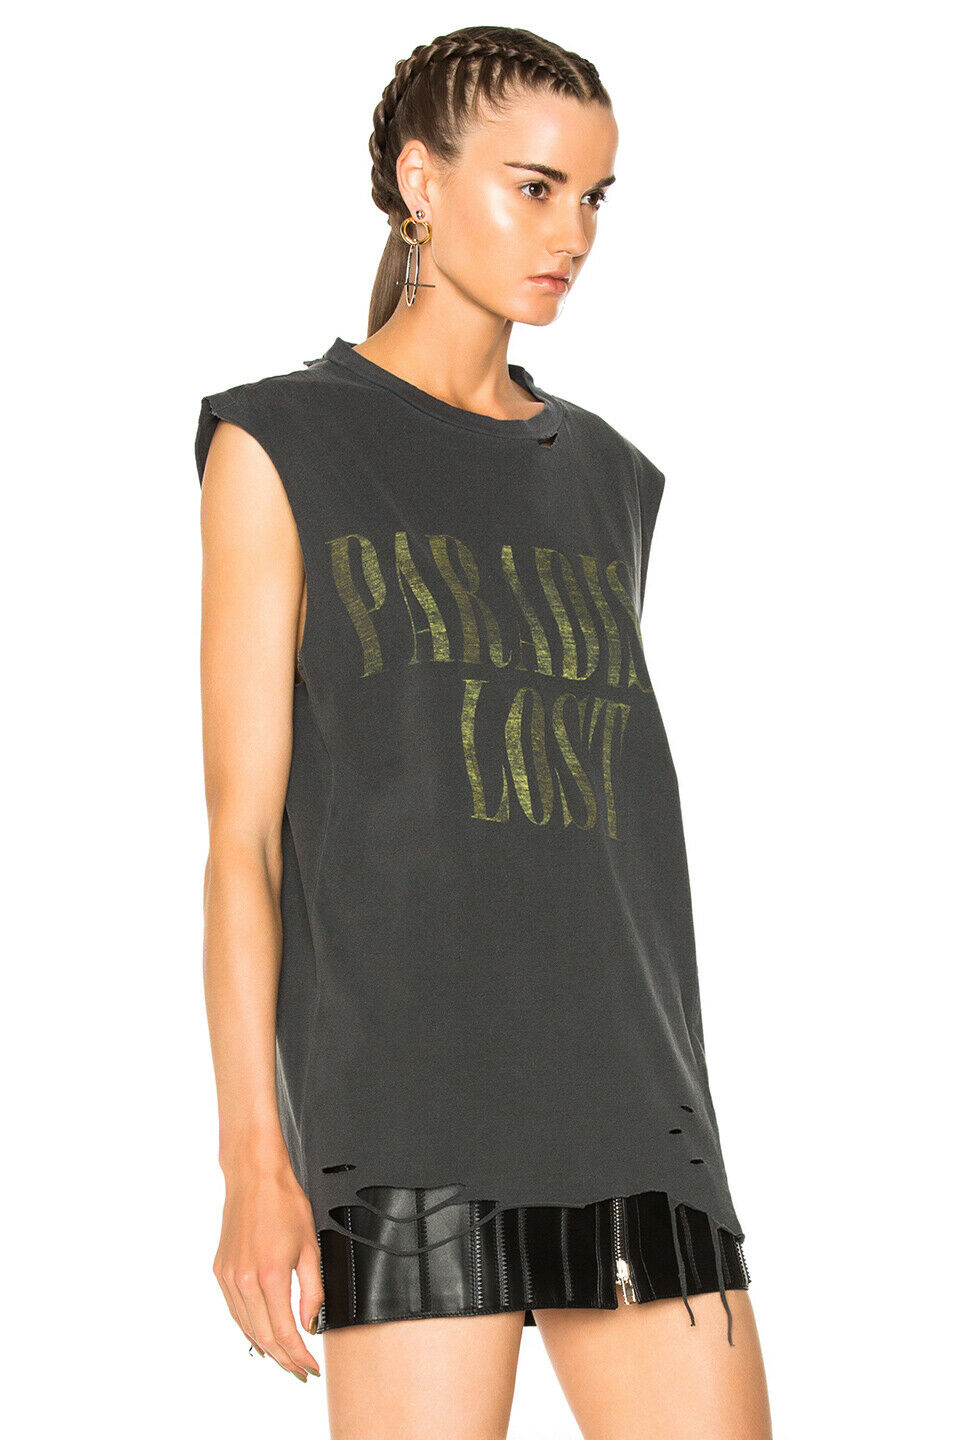 ALCHEMIST faded schwarz ripped cotton tank Paradise Lost shirt boxy fit tee XS NEW